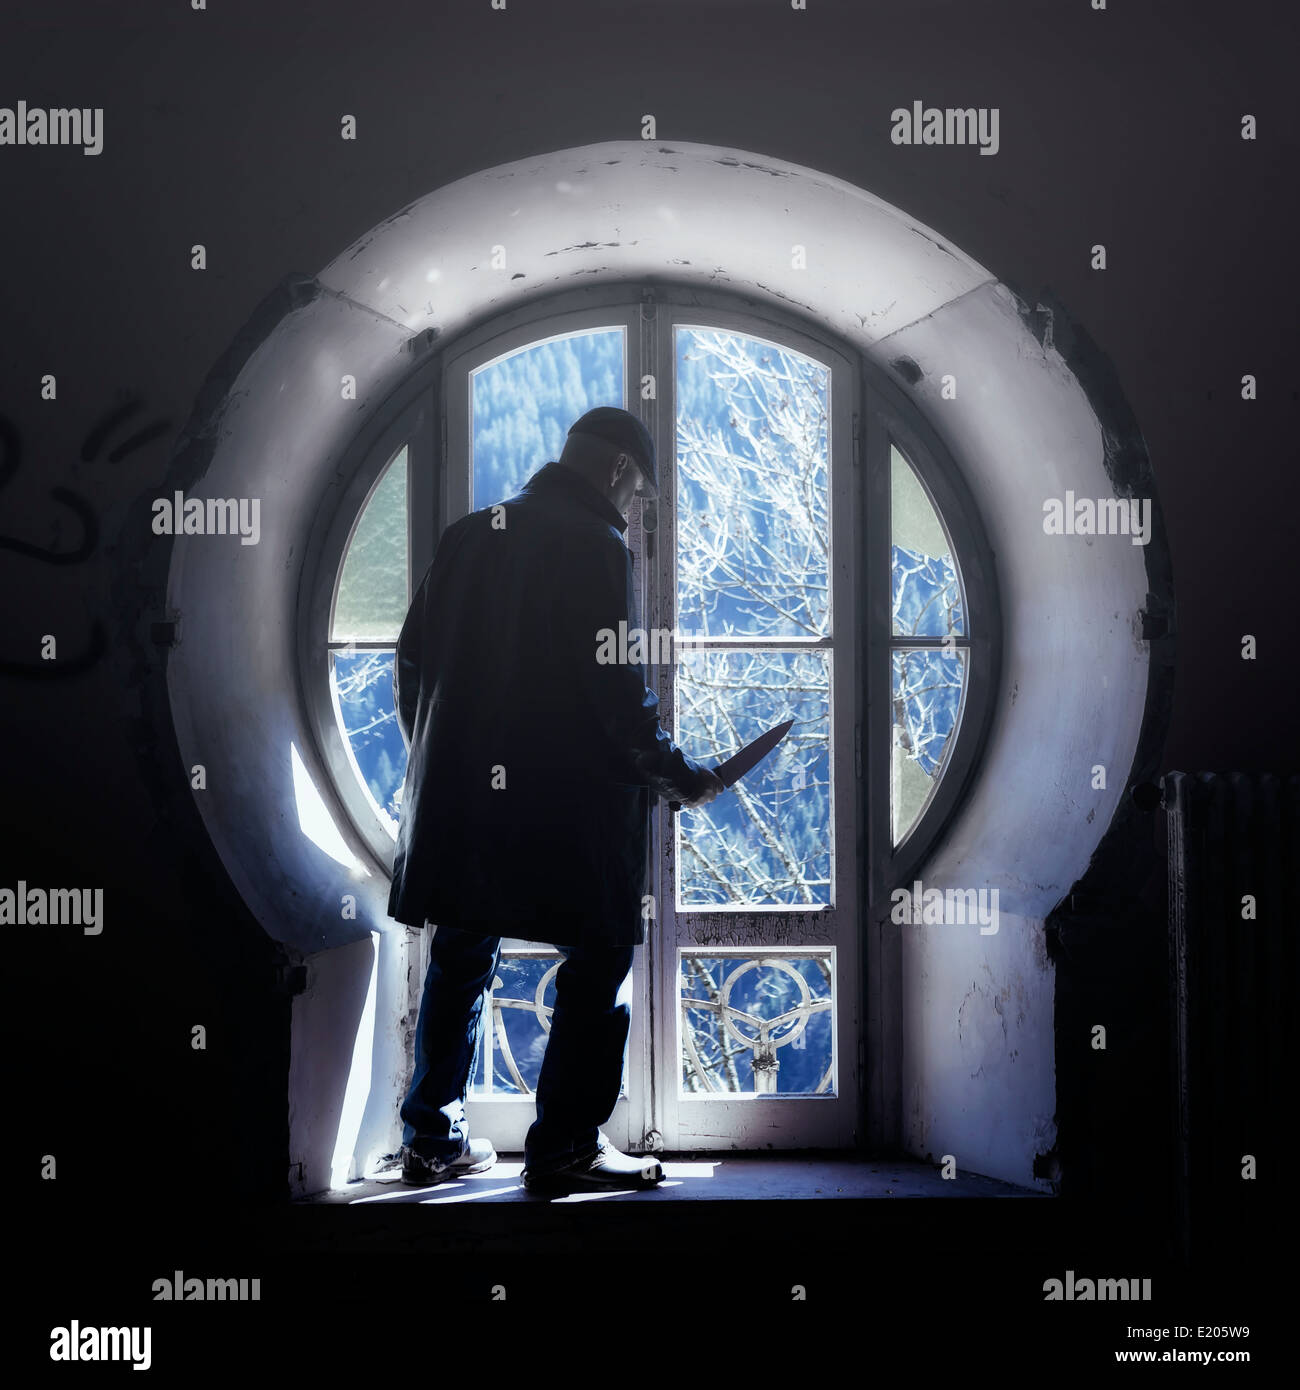 a man with a knife in front of an old window in an abandoned building - Stock Image